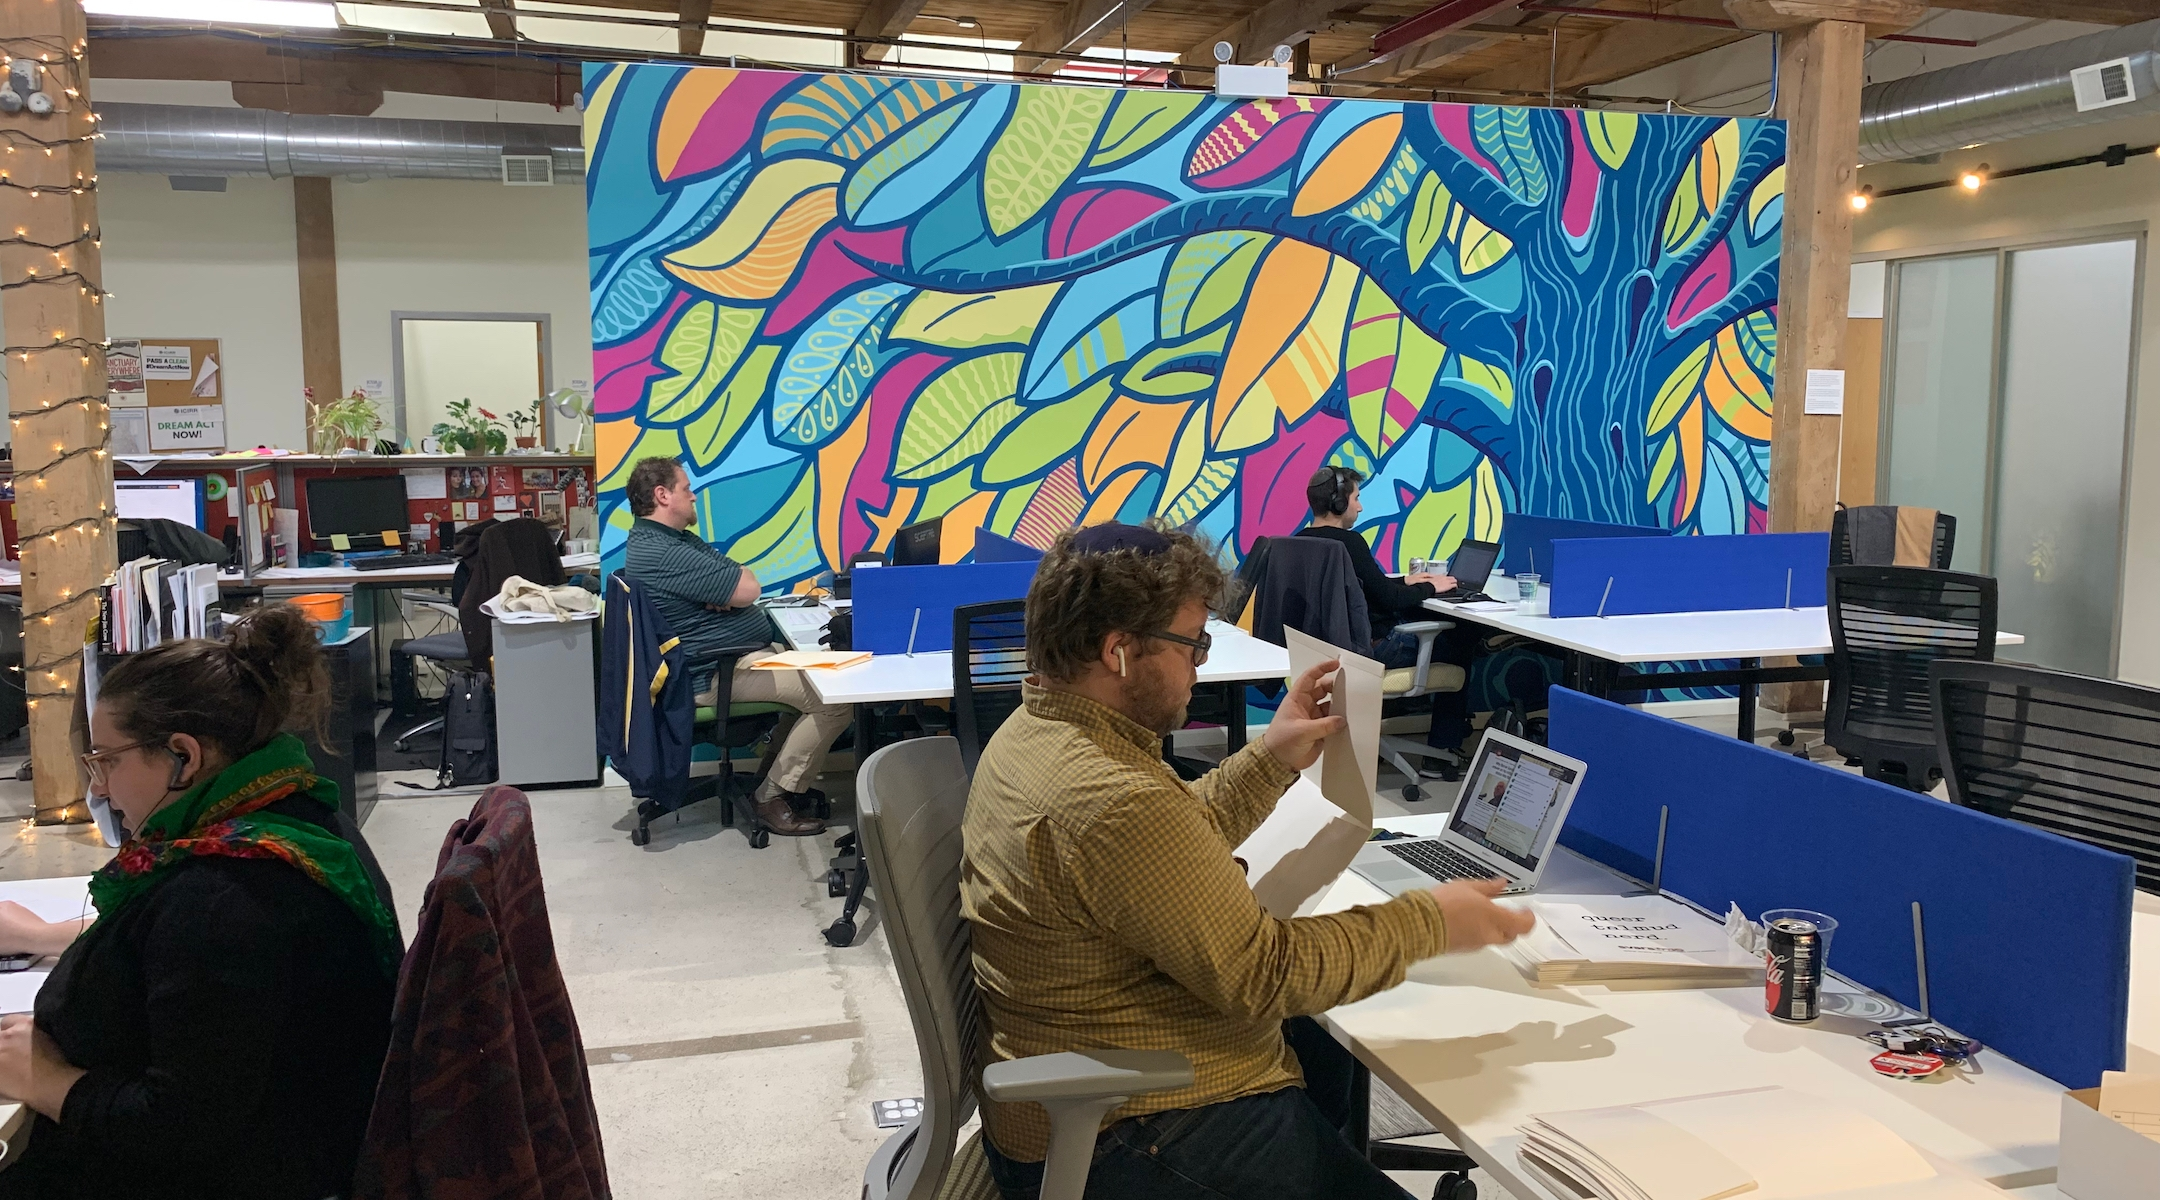 This co-working space is a Jewish take on WeWork